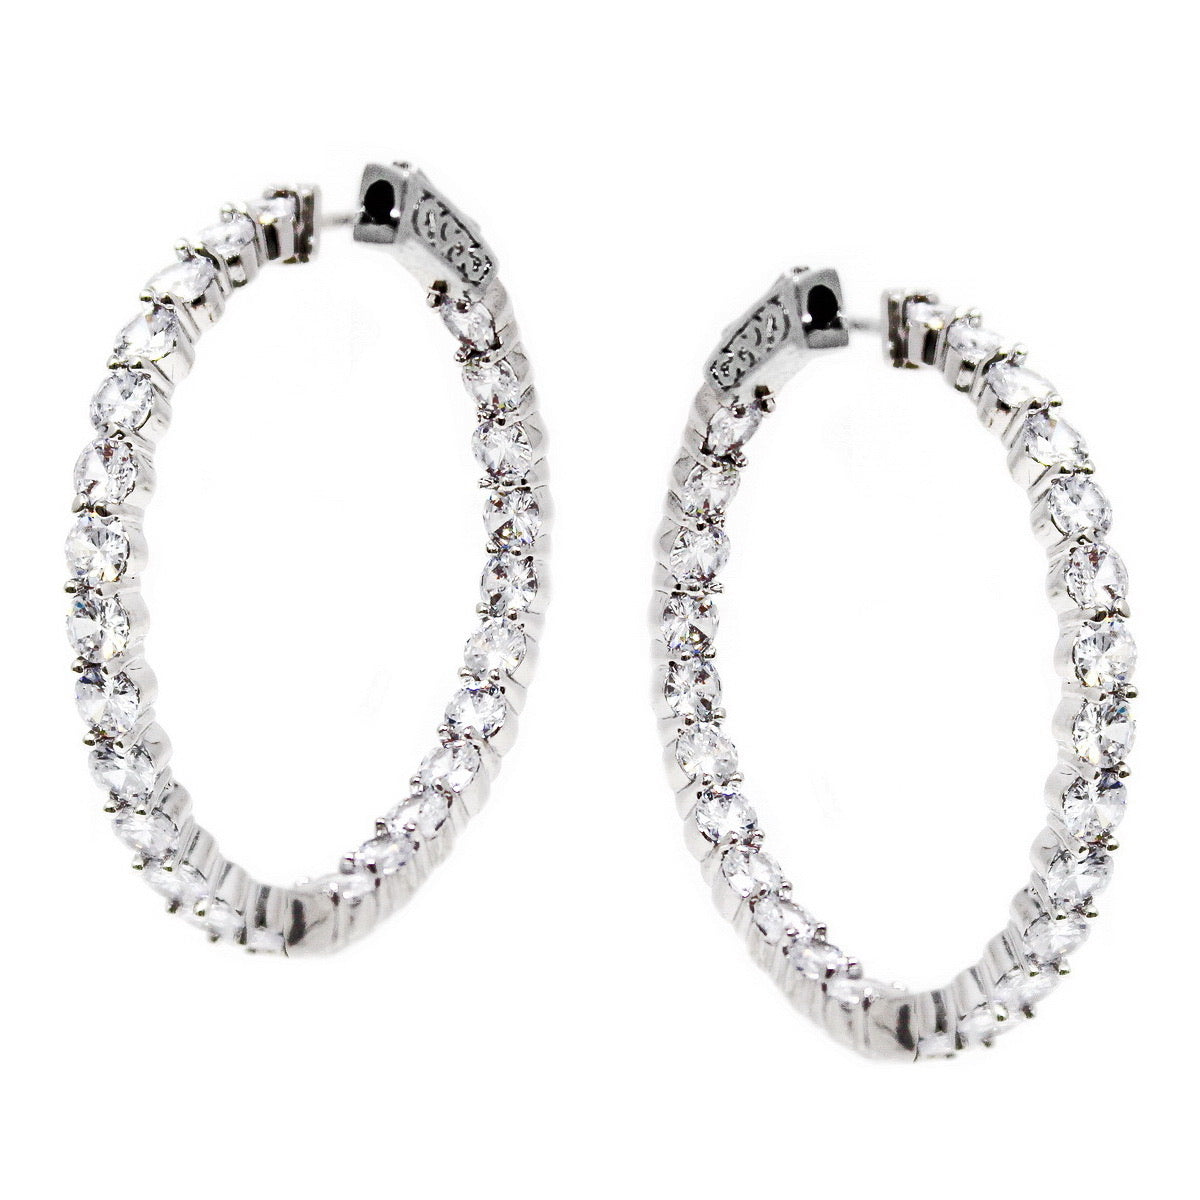 BITZ CZ HOOP EARRING - NOW IN TWO SIZES!